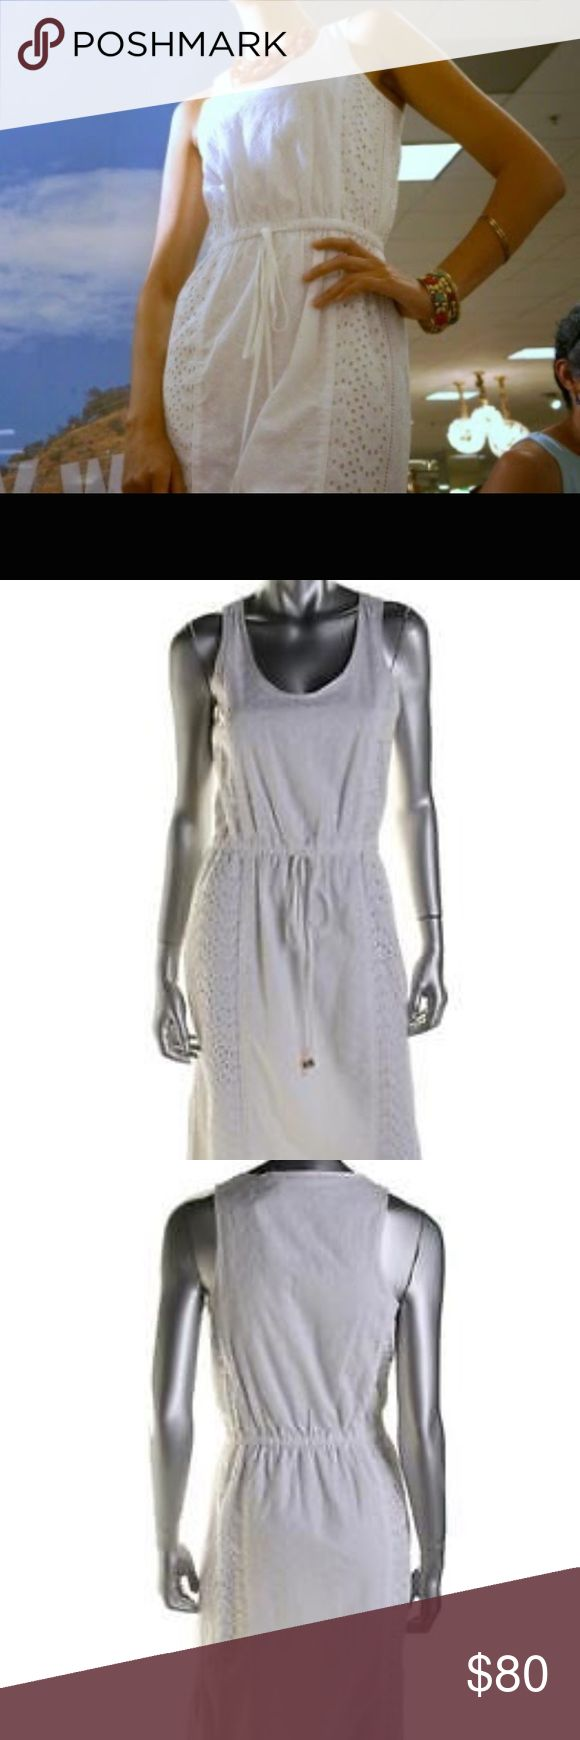 Michael Kors American Icon white dress Beautiful dress, perfect for the summer. NWT. Size Small. I'm 5'6 134 lbs. fits me perfectly with some room. It's the  perfect length to be worn with flats or heels. Has 2 slits on each side, moderate opening. Make me an offer. MICHAEL Michael Kors Dresses